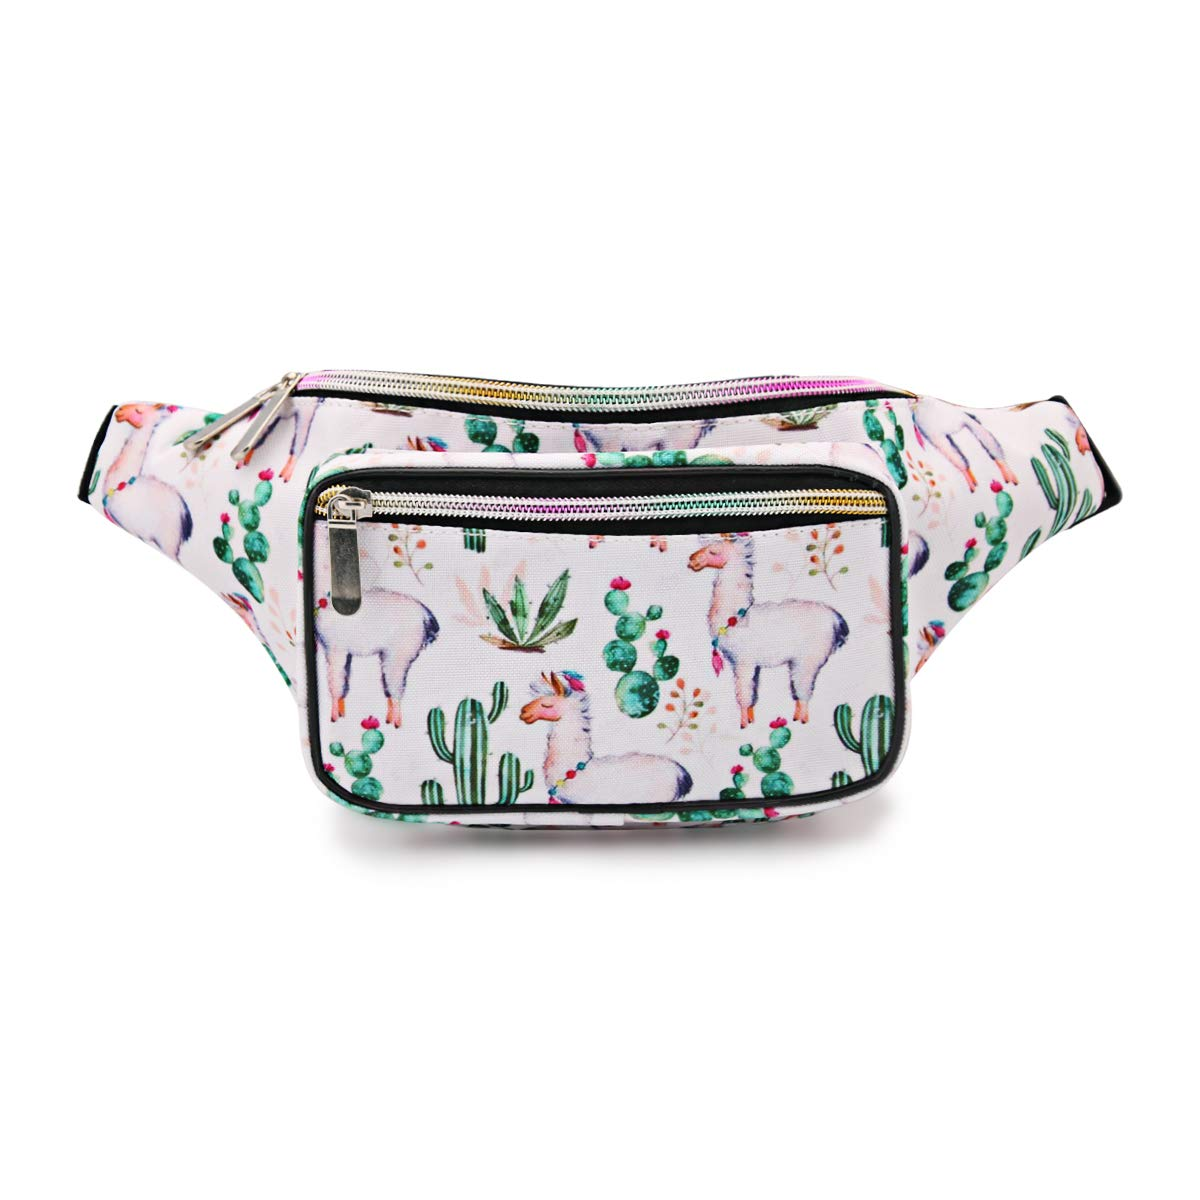 daebb5e14a8f Mum's memory Cute Fanny Pack for Women 80's Waterproof Girls Waist Bag with  Adjustable Belt for Traveling, Rave, Festival, Party and Daily Used